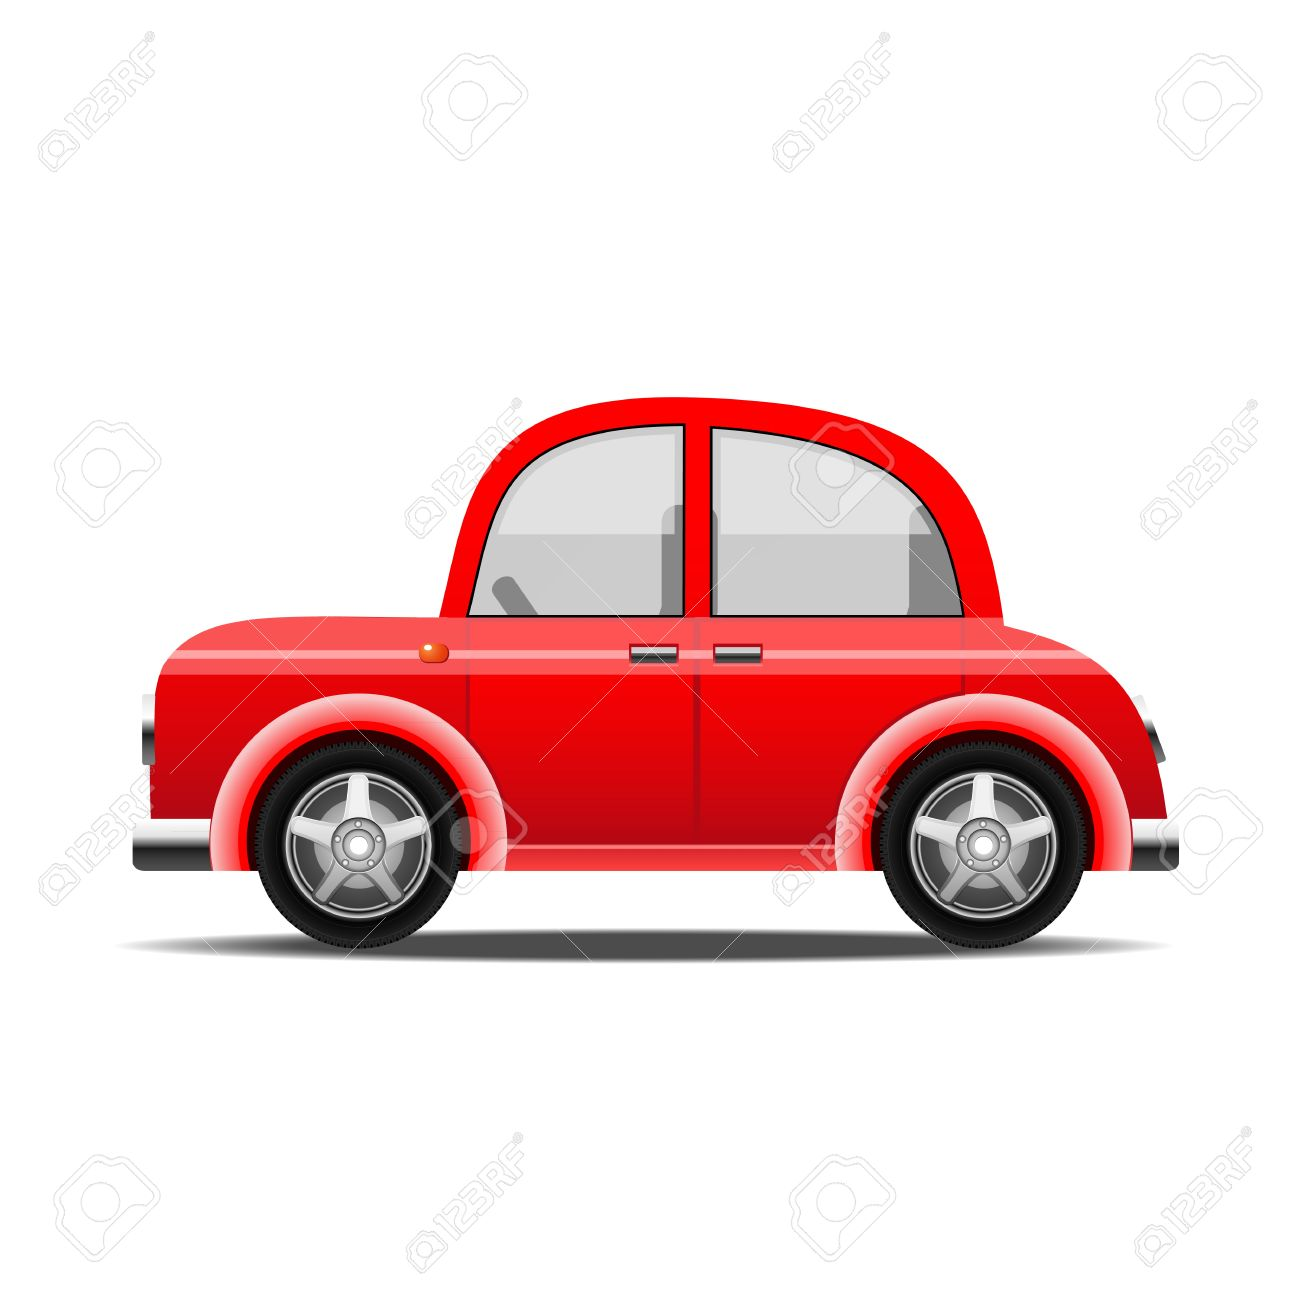 red car, vector - 10708783